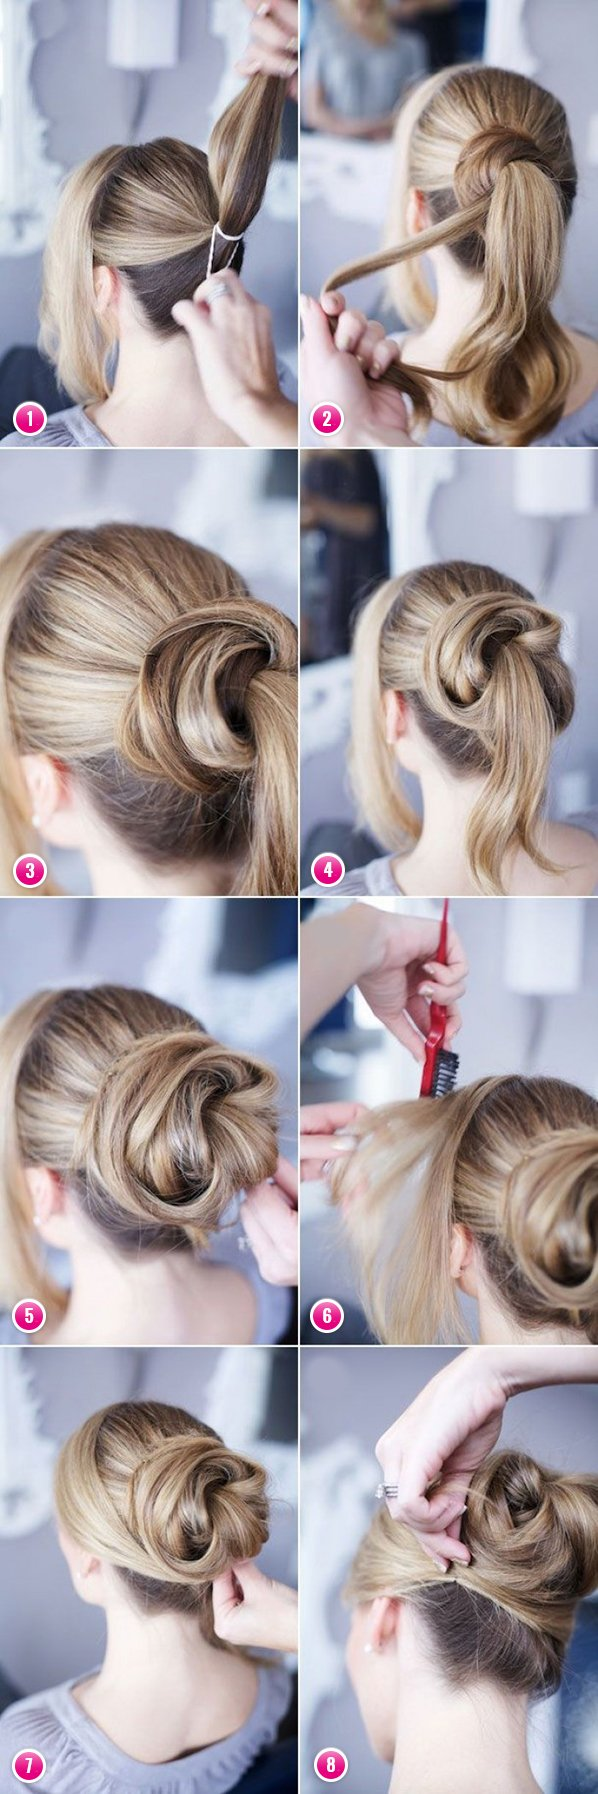 Creative hairstyles for long hair